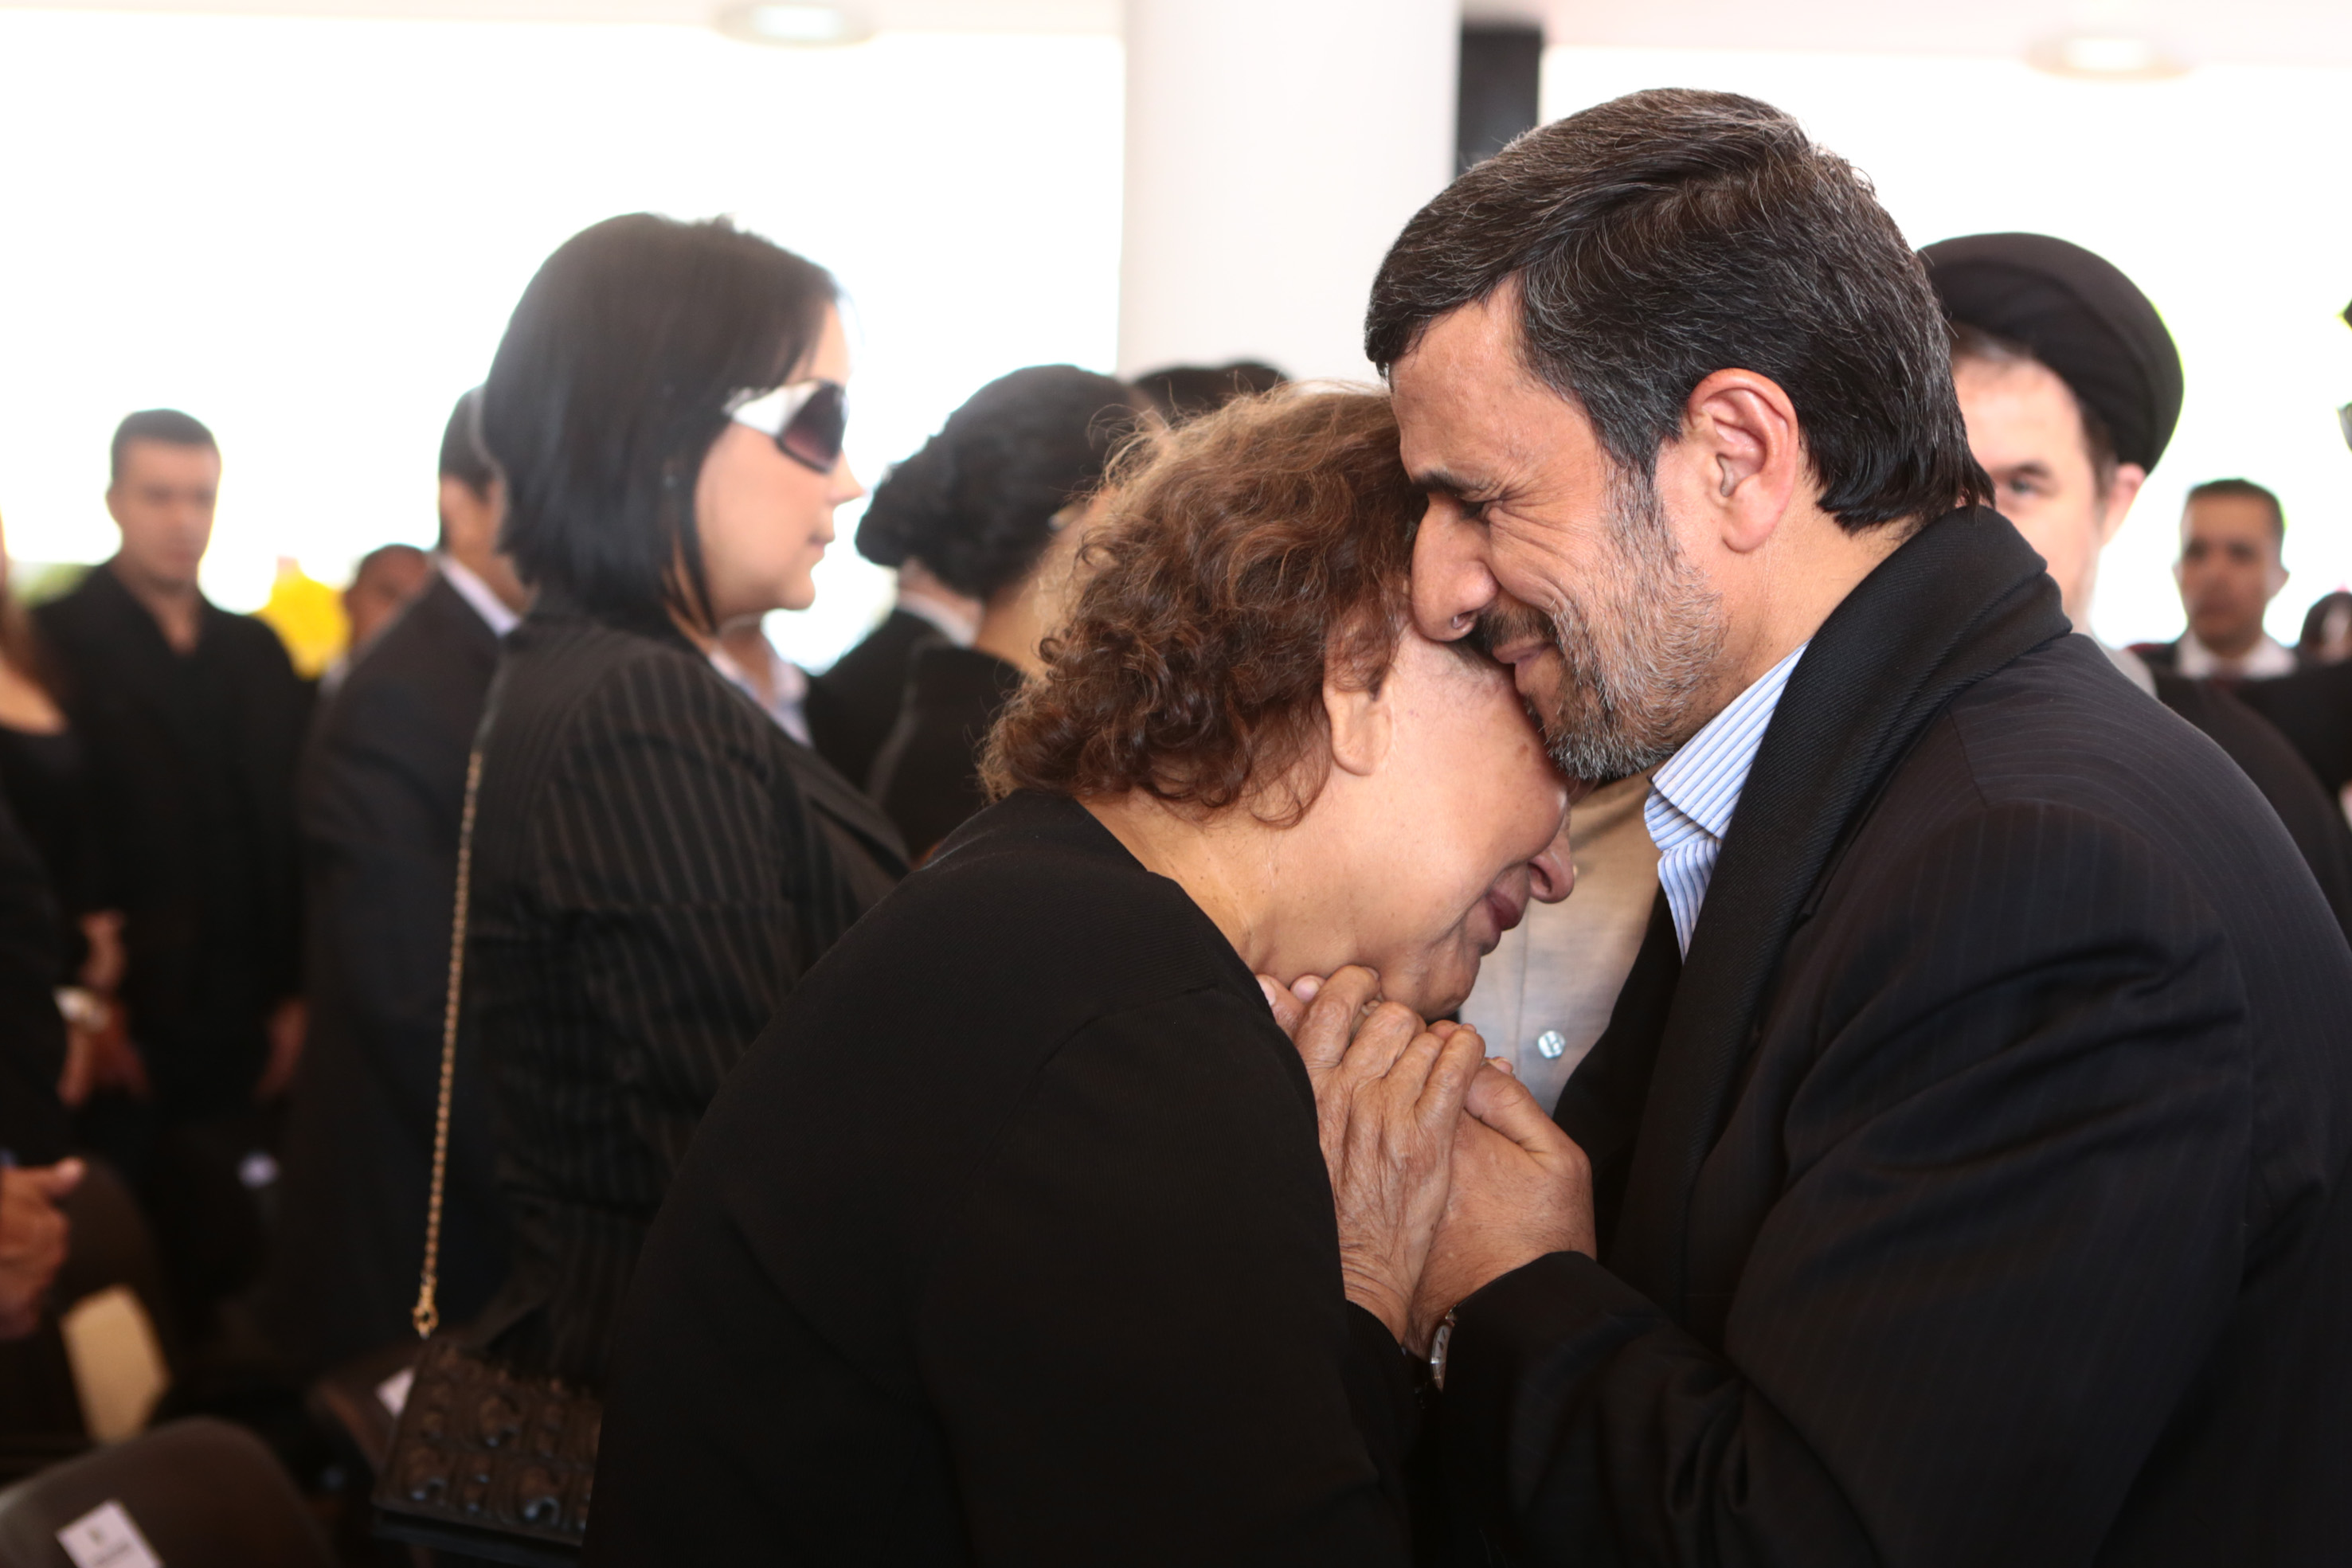 In this photo released by Miraflores Press Office, Iran's President Mahmoud Ahmadinejad comforts Elena Frias next to the flag-draped coffin of her son, Venezuela's late President Hugo Chavez, during the funeral ceremony at the military academy in Caracas, Venezuela, Friday, March 8, 2013. Chavez died on March 5 after a nearly two-year bout with cancer.  He was 58.  (AP Photo/Miraflores Press Office)